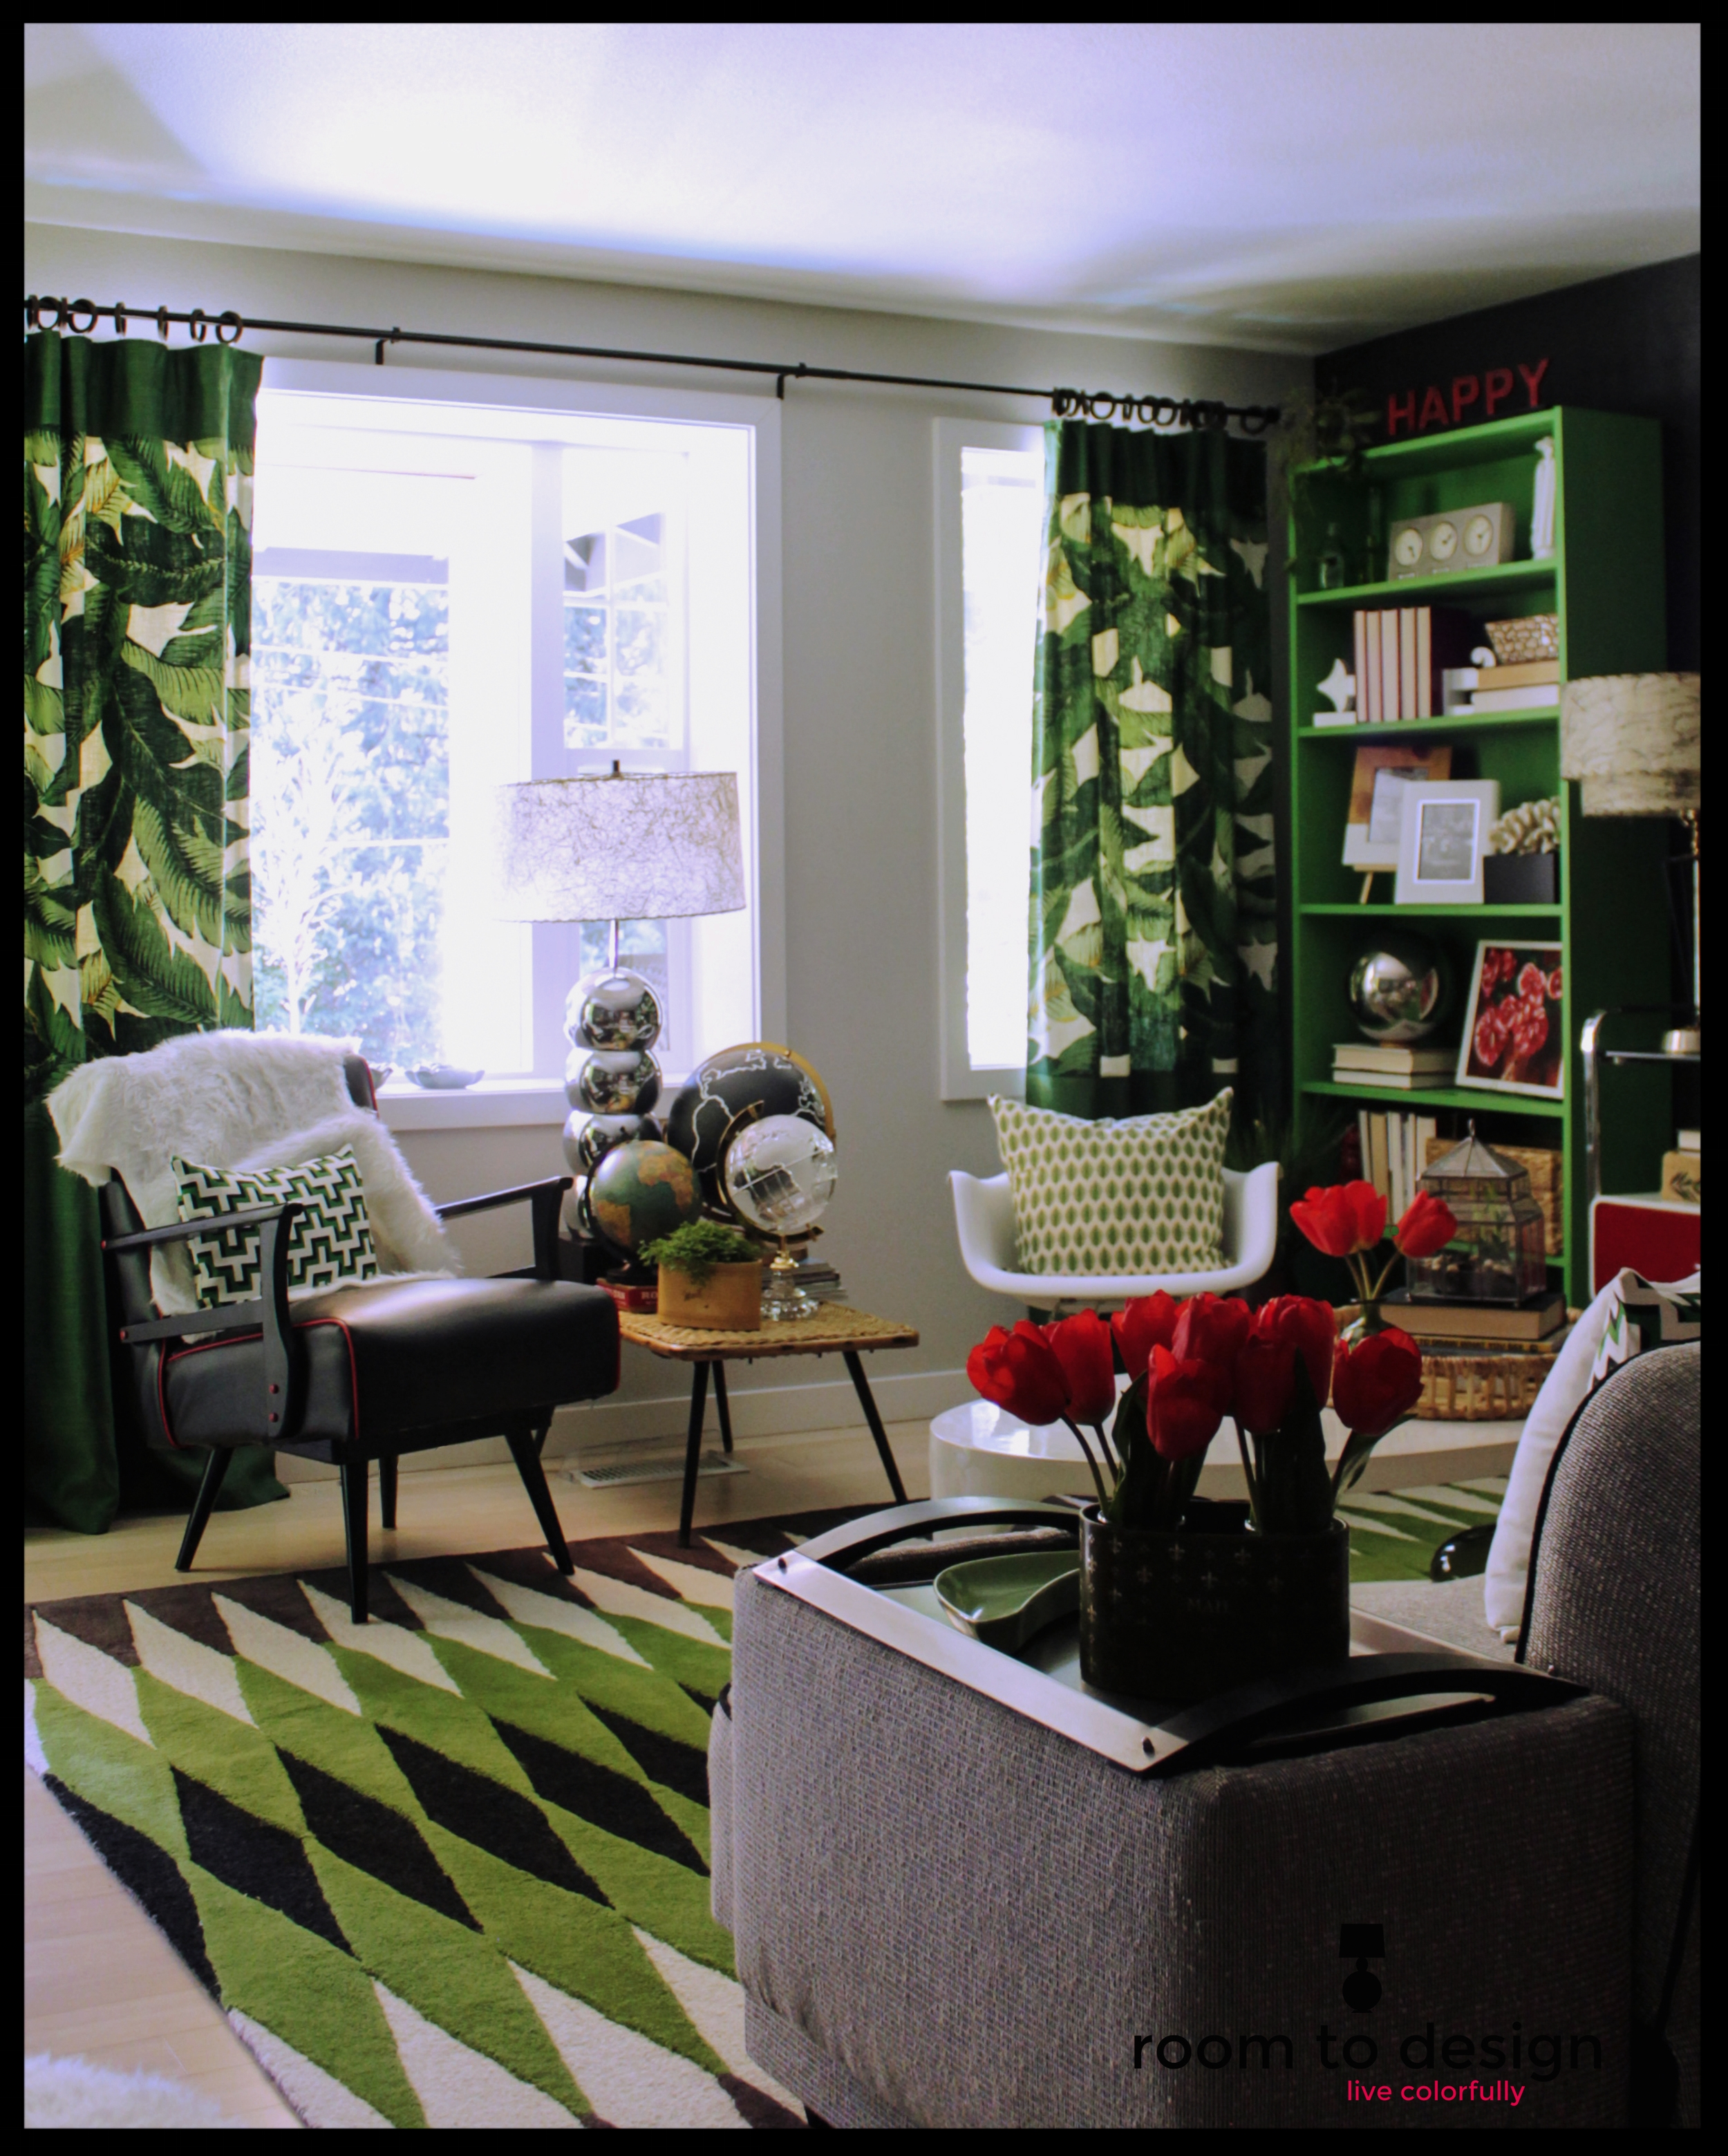 living-room-make-over-before-and-after.jpg